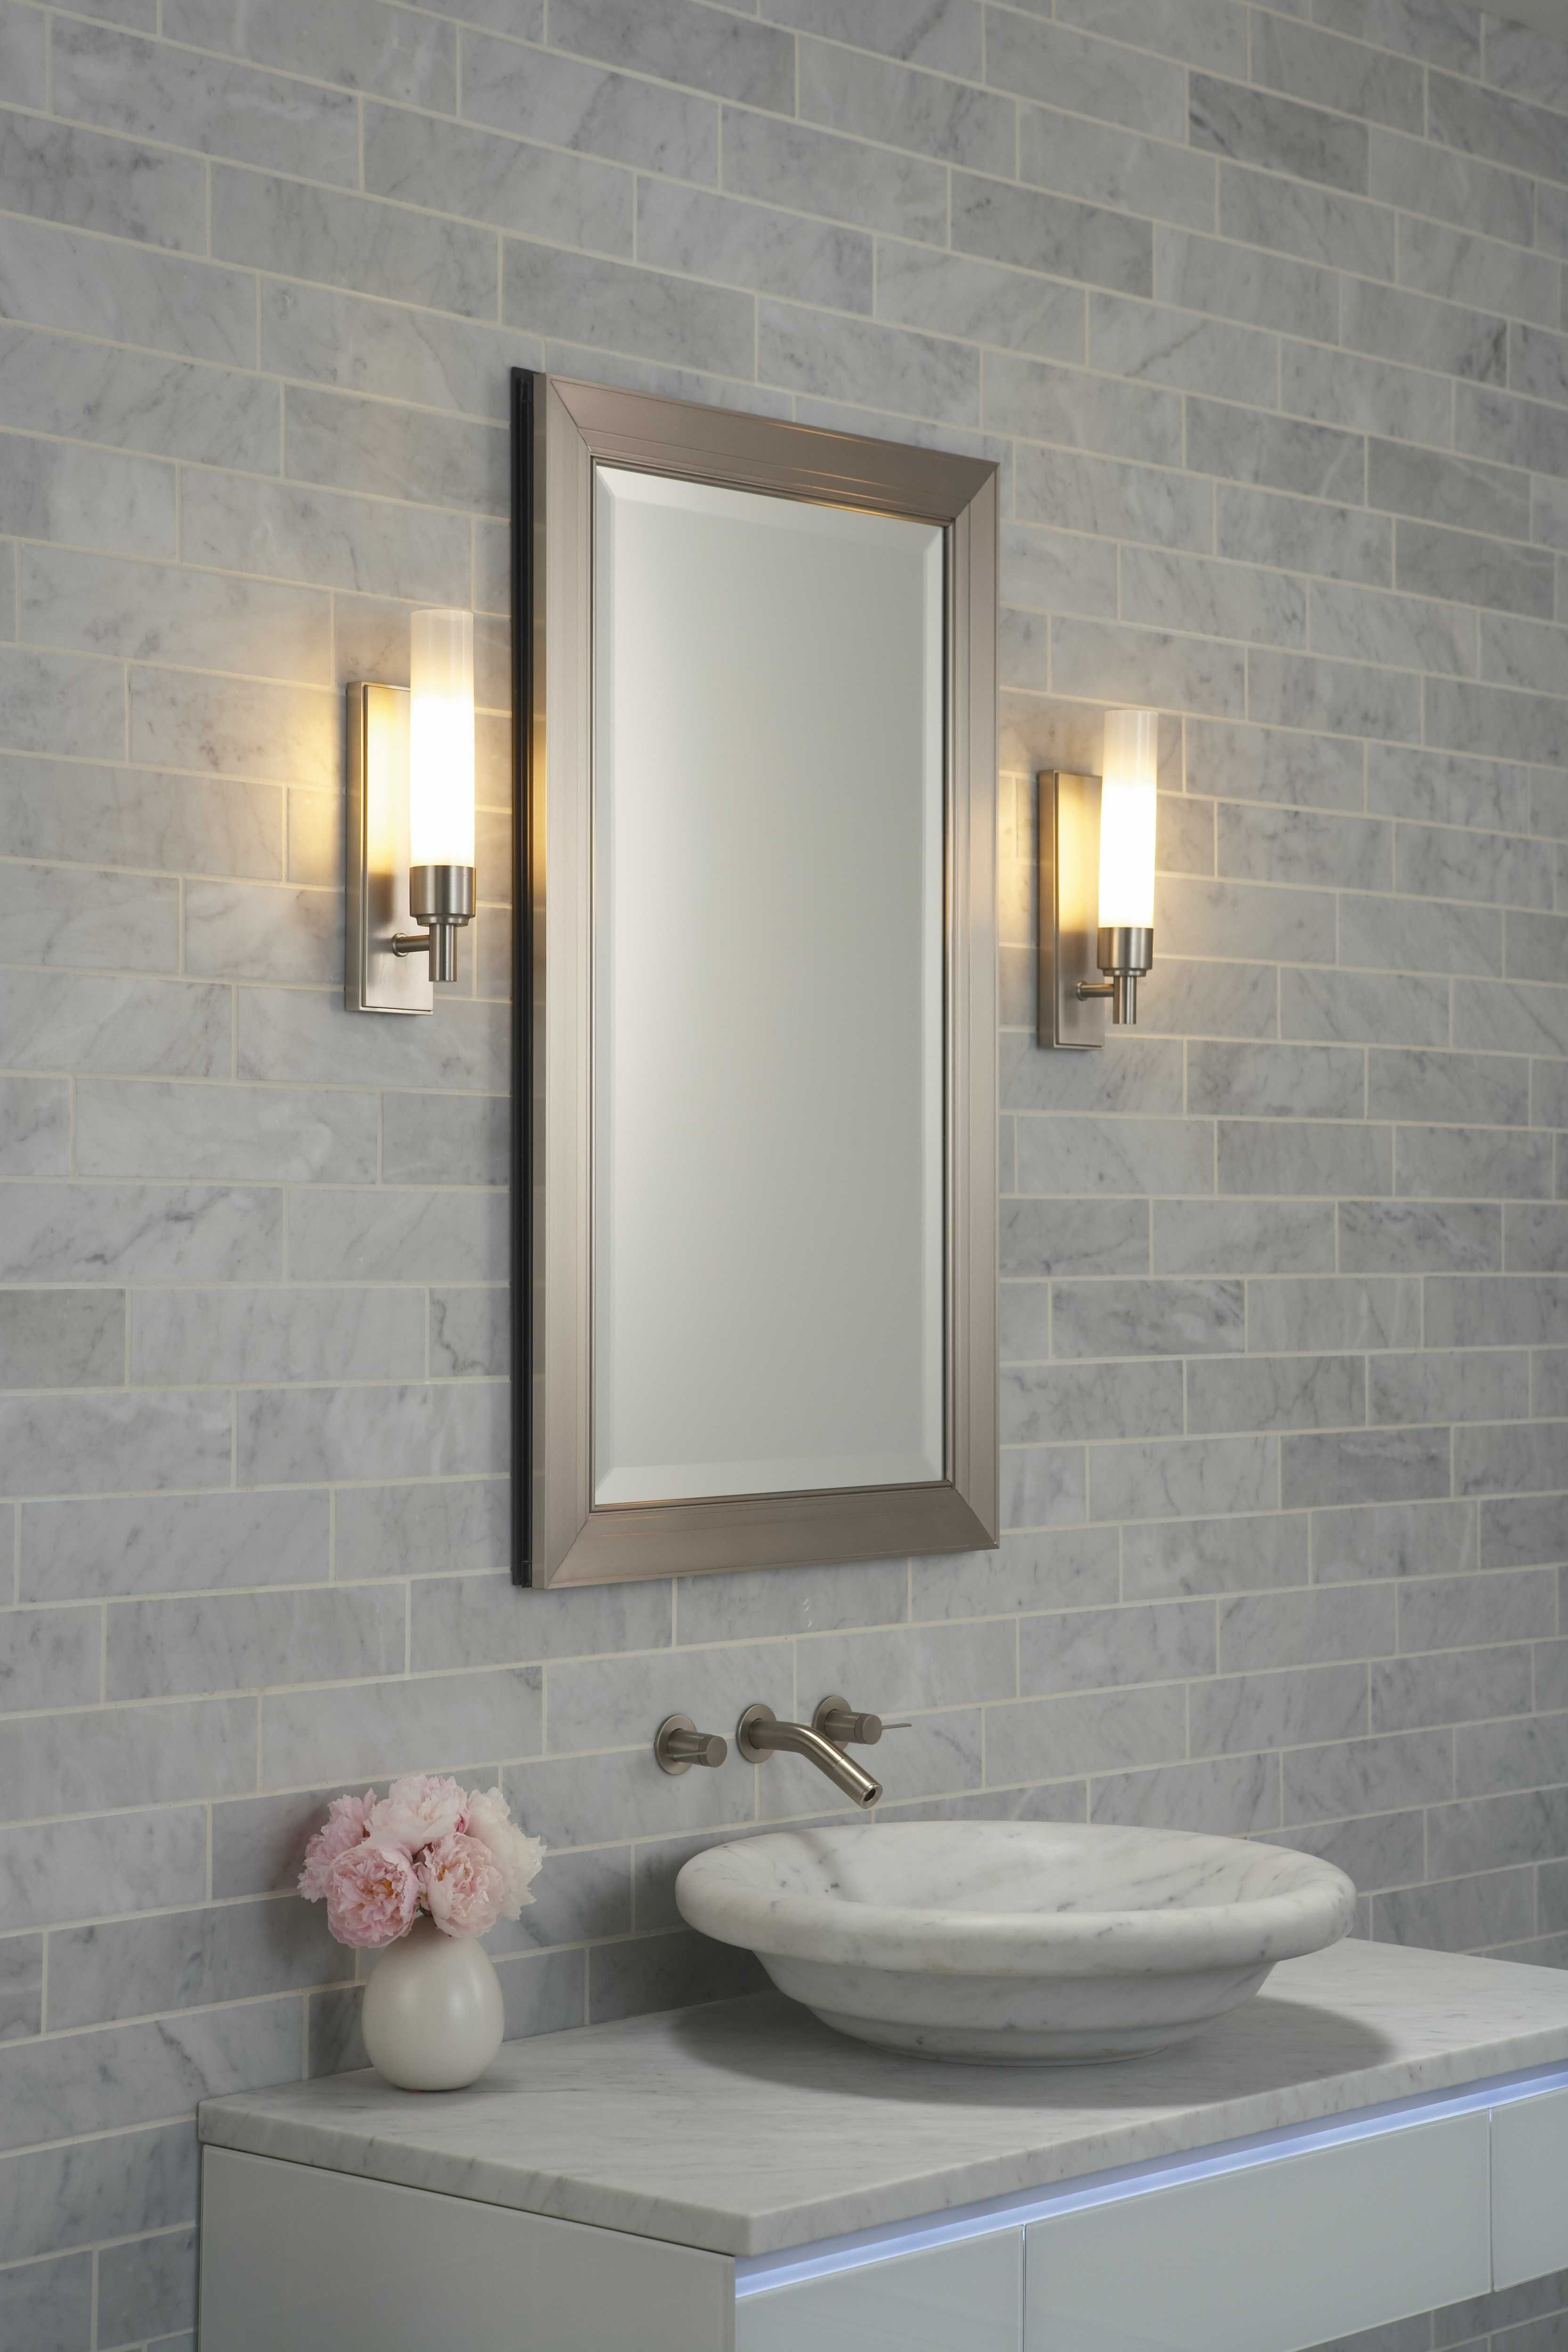 24 Luxury Vanity Mirror With Lights Ideas With Images Bathroom